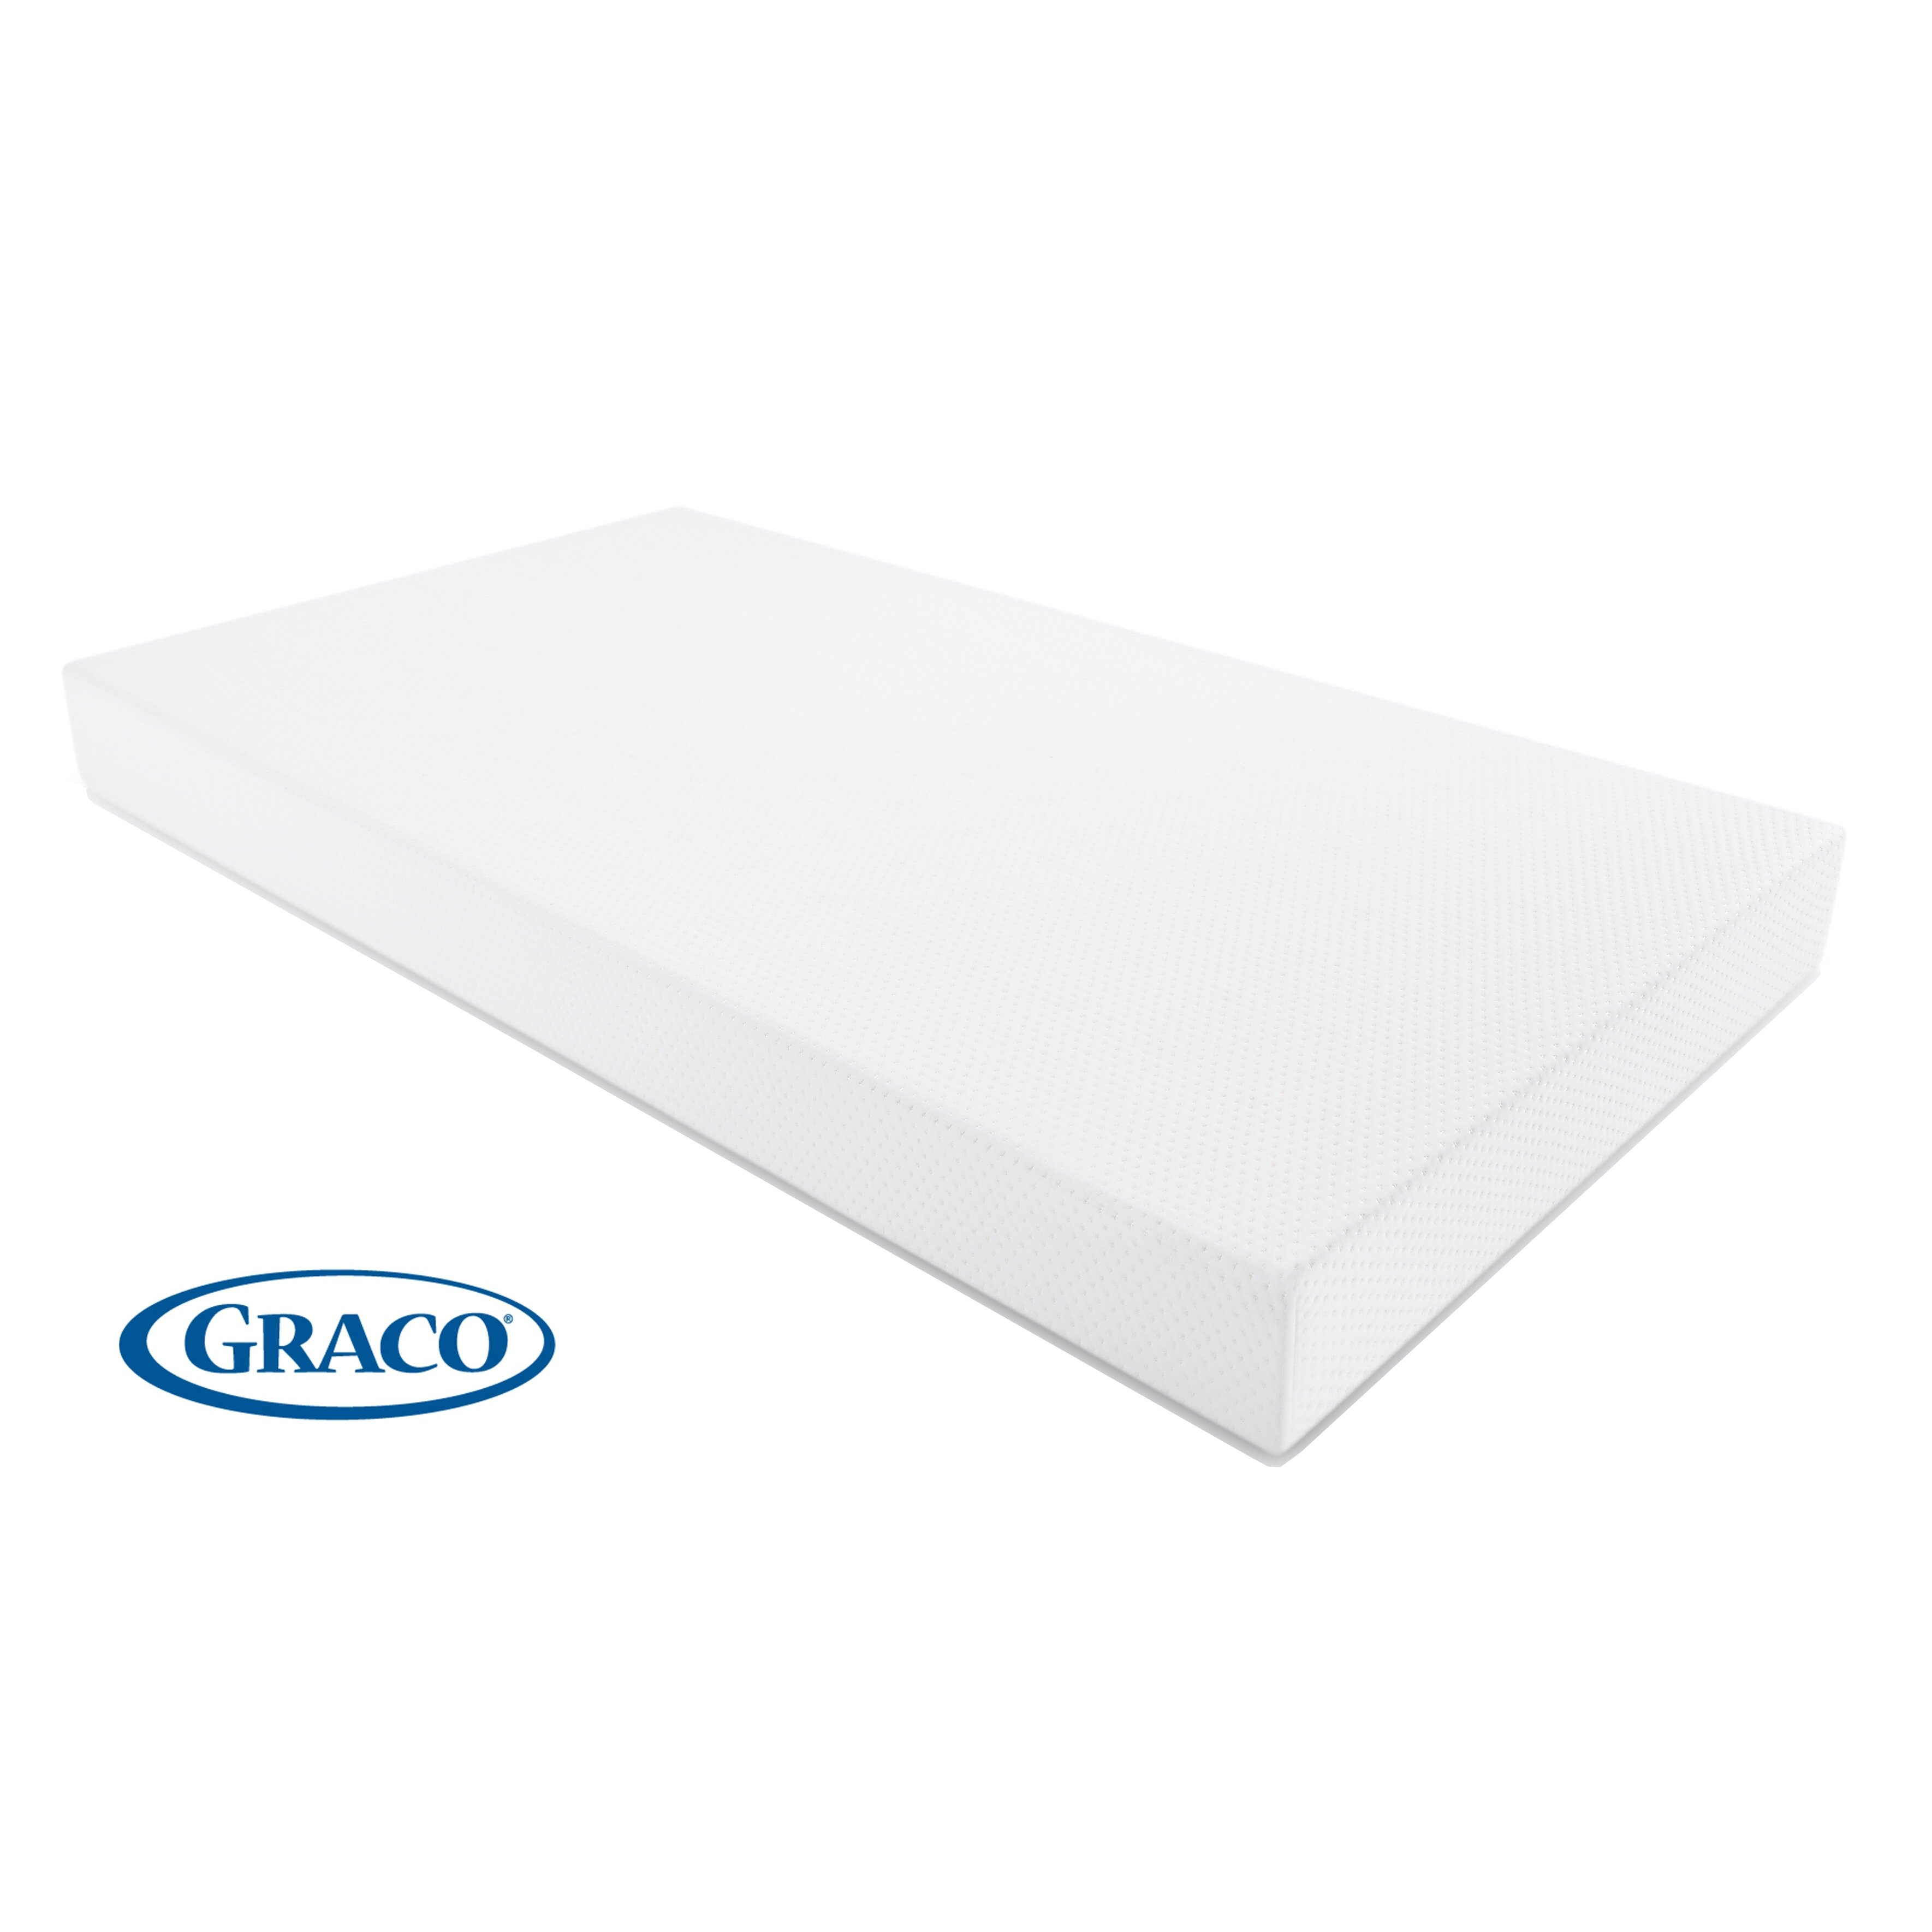 Graco Premium Foam Crib And Toddler Bed Mattress Reviews Wayfair